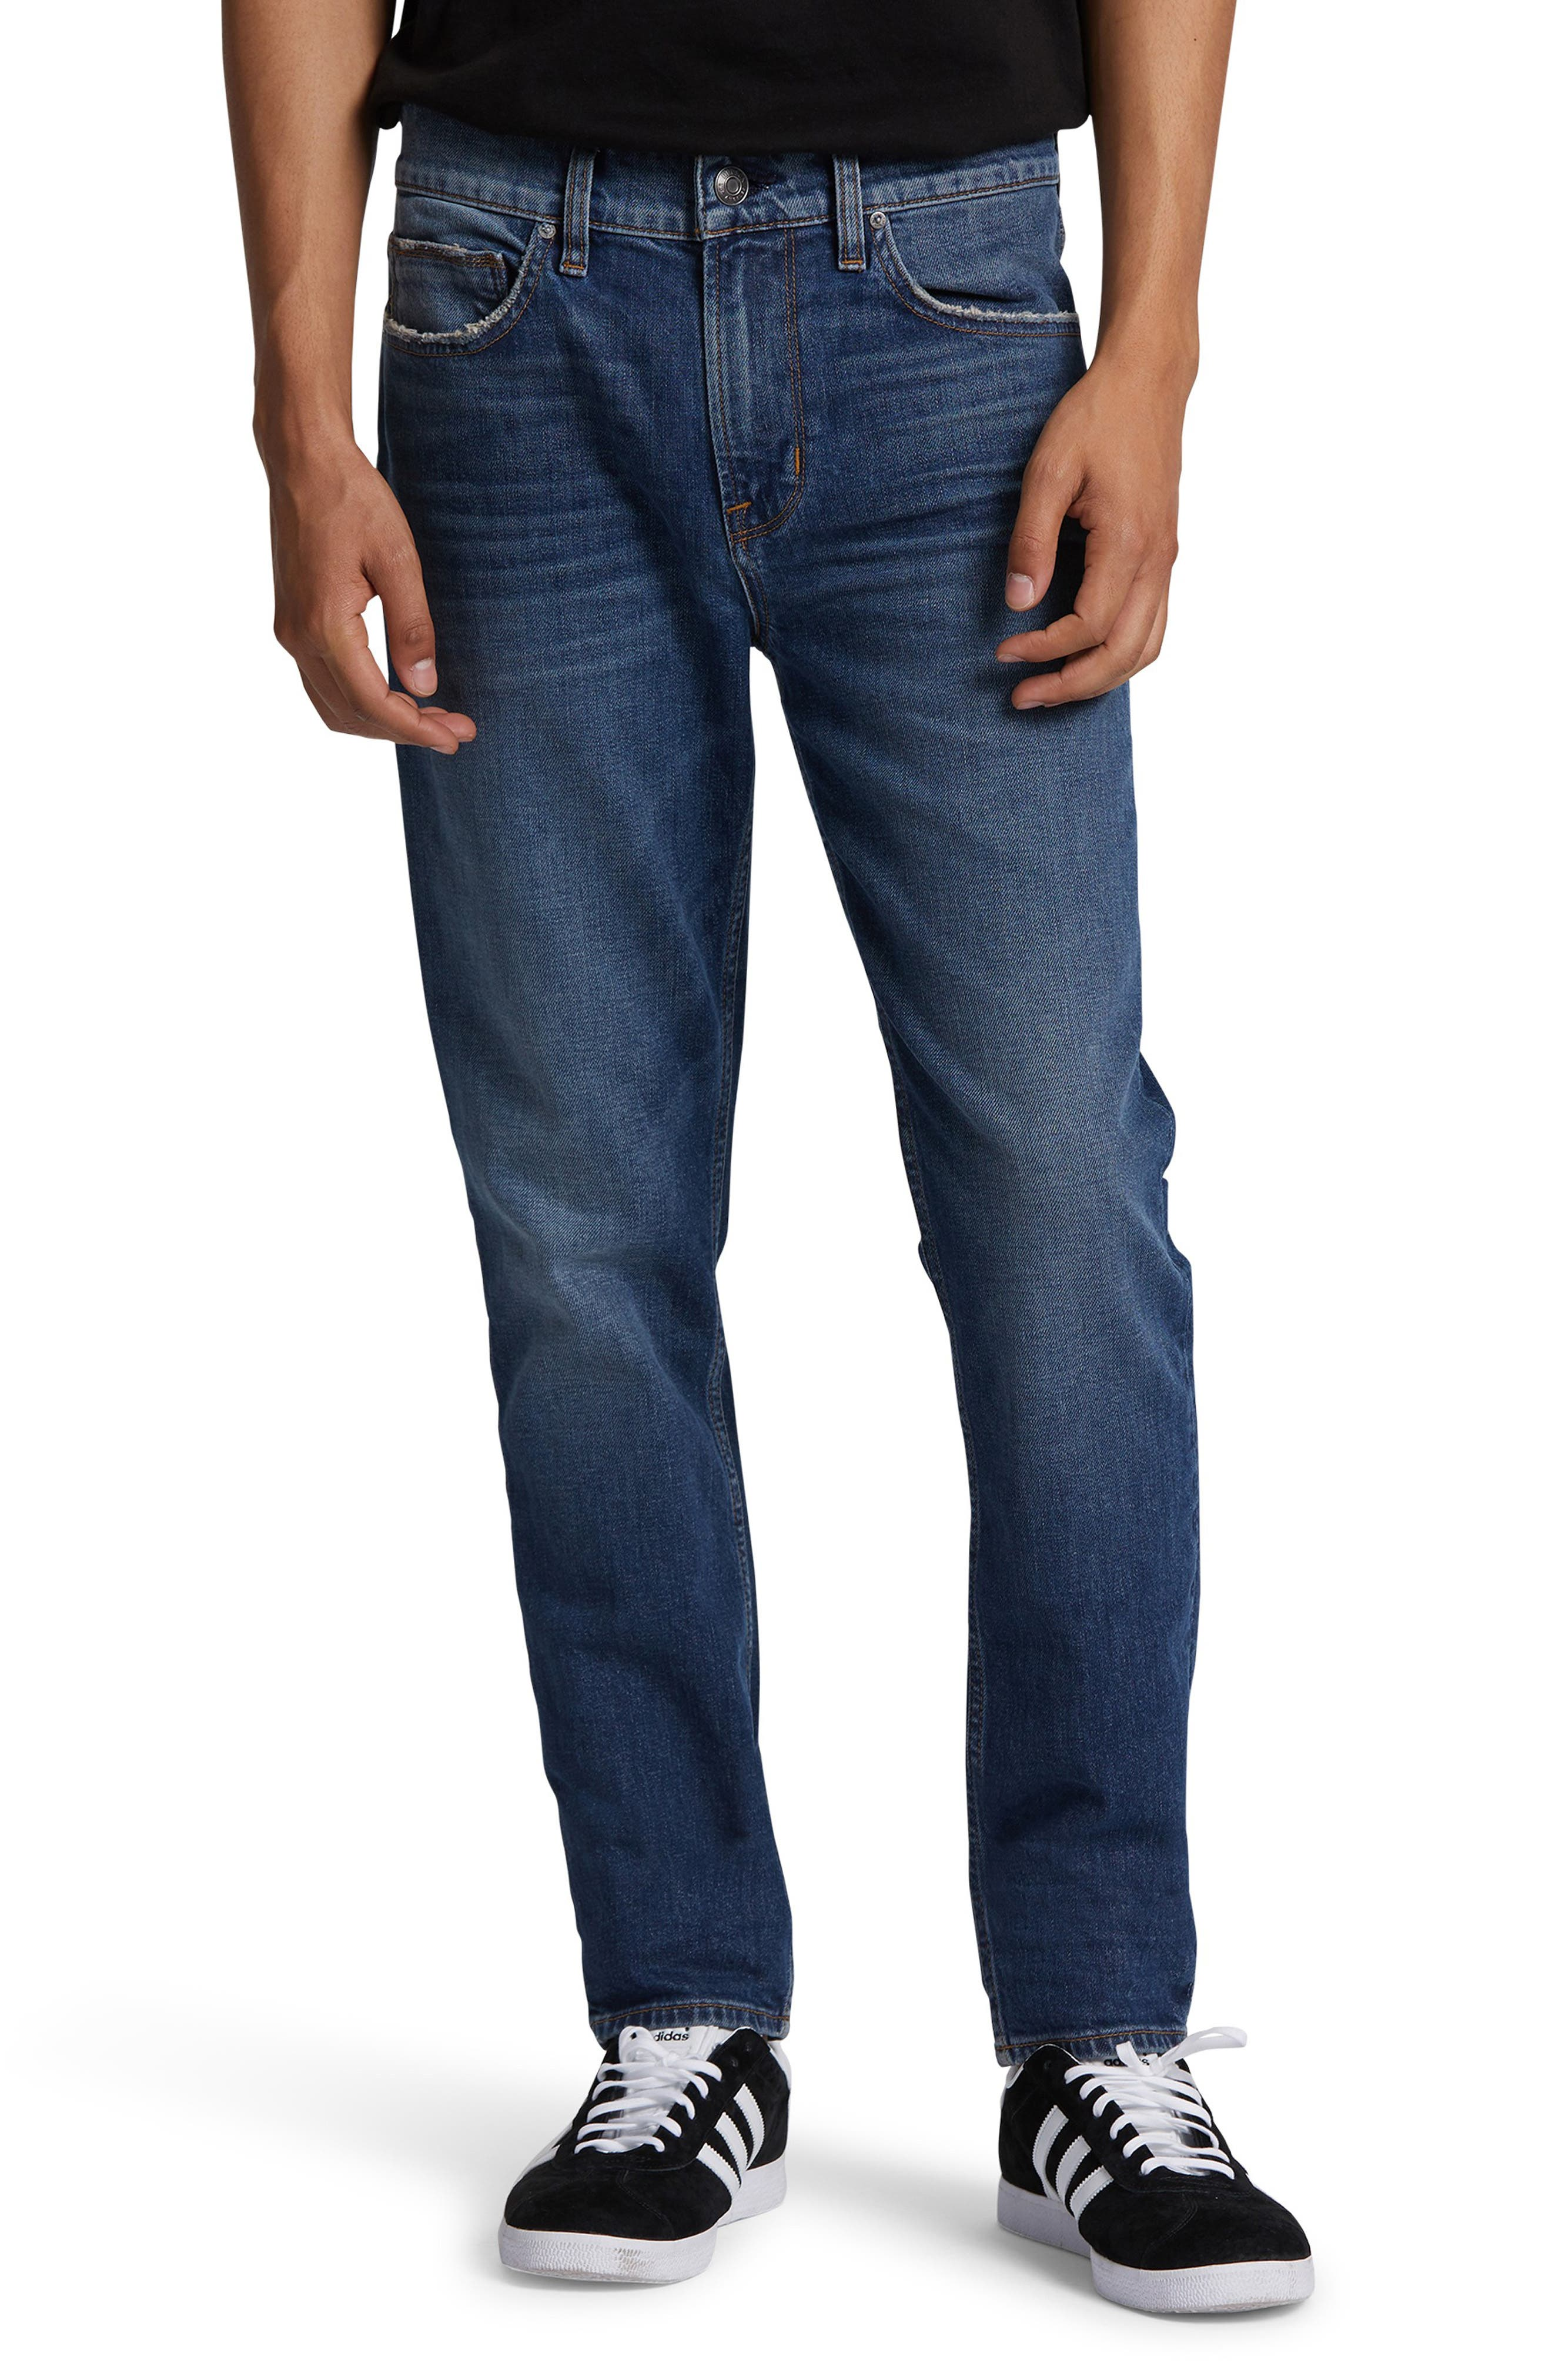 Heavy sanding and shredded edging thoroughly break in jeans cut from dark stretch denim with a mid-rise profile and skinny (but not too skinny) legs. Style Name: Hudson Jeans Axl Skinny Fit Jeans (Onside). Style Number: 6030640. Available in stores.